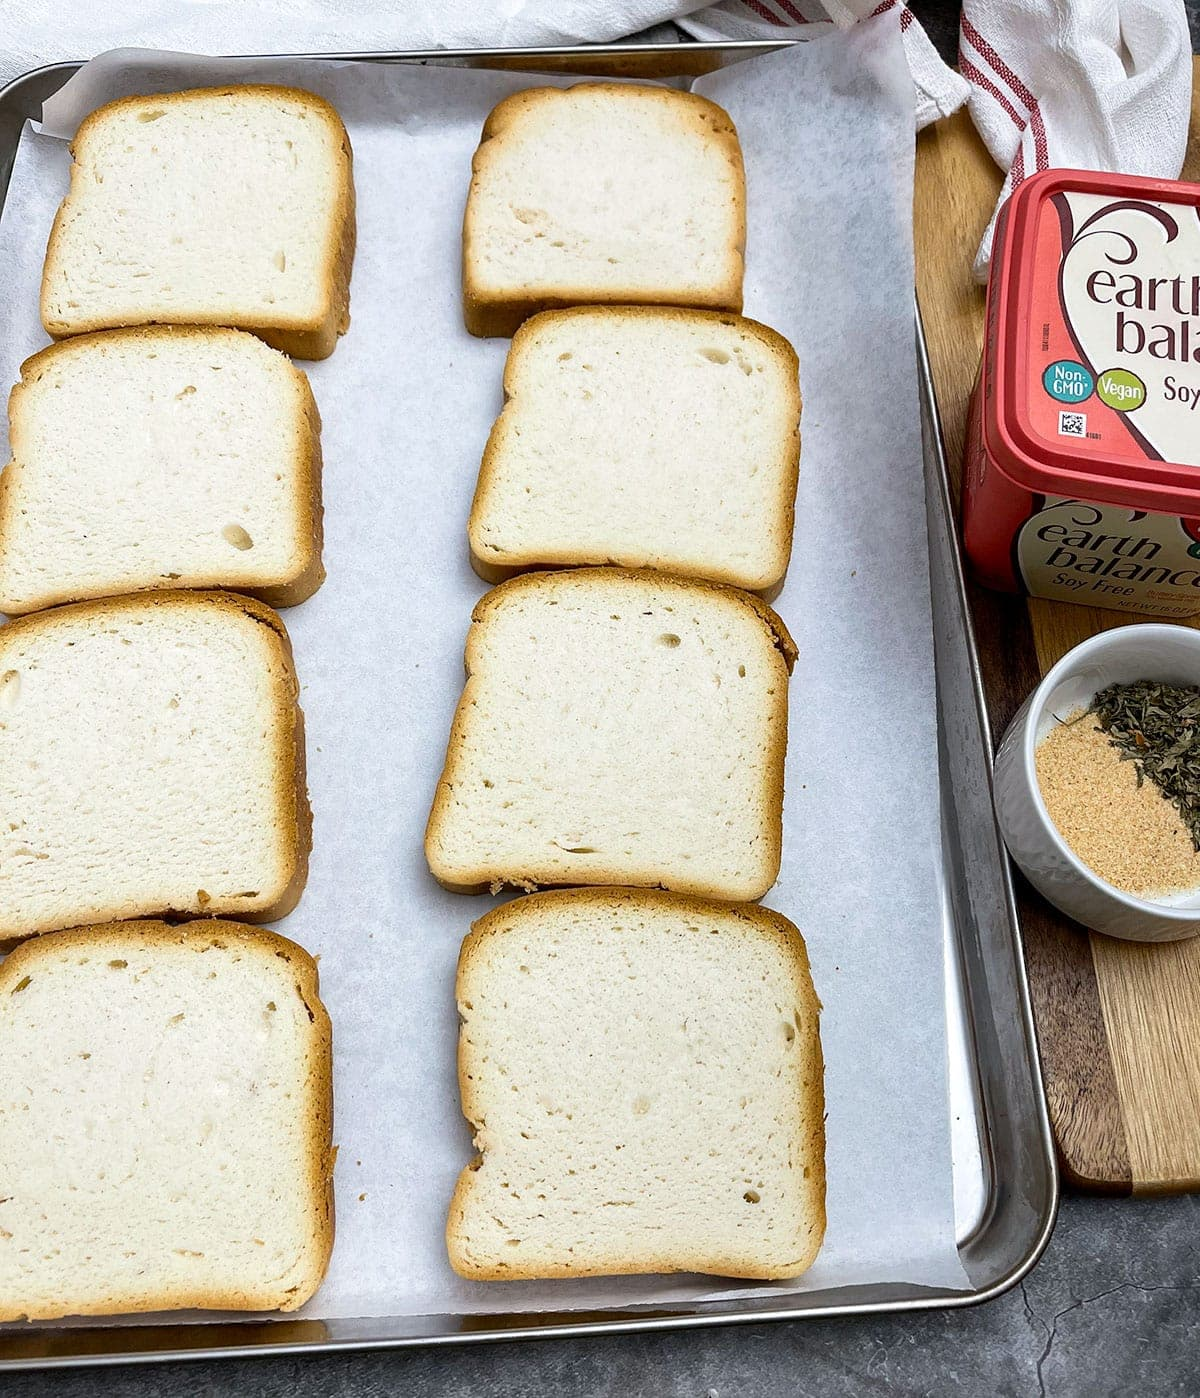 Texas toast slices on baking sheet with seasoning and vegan butter